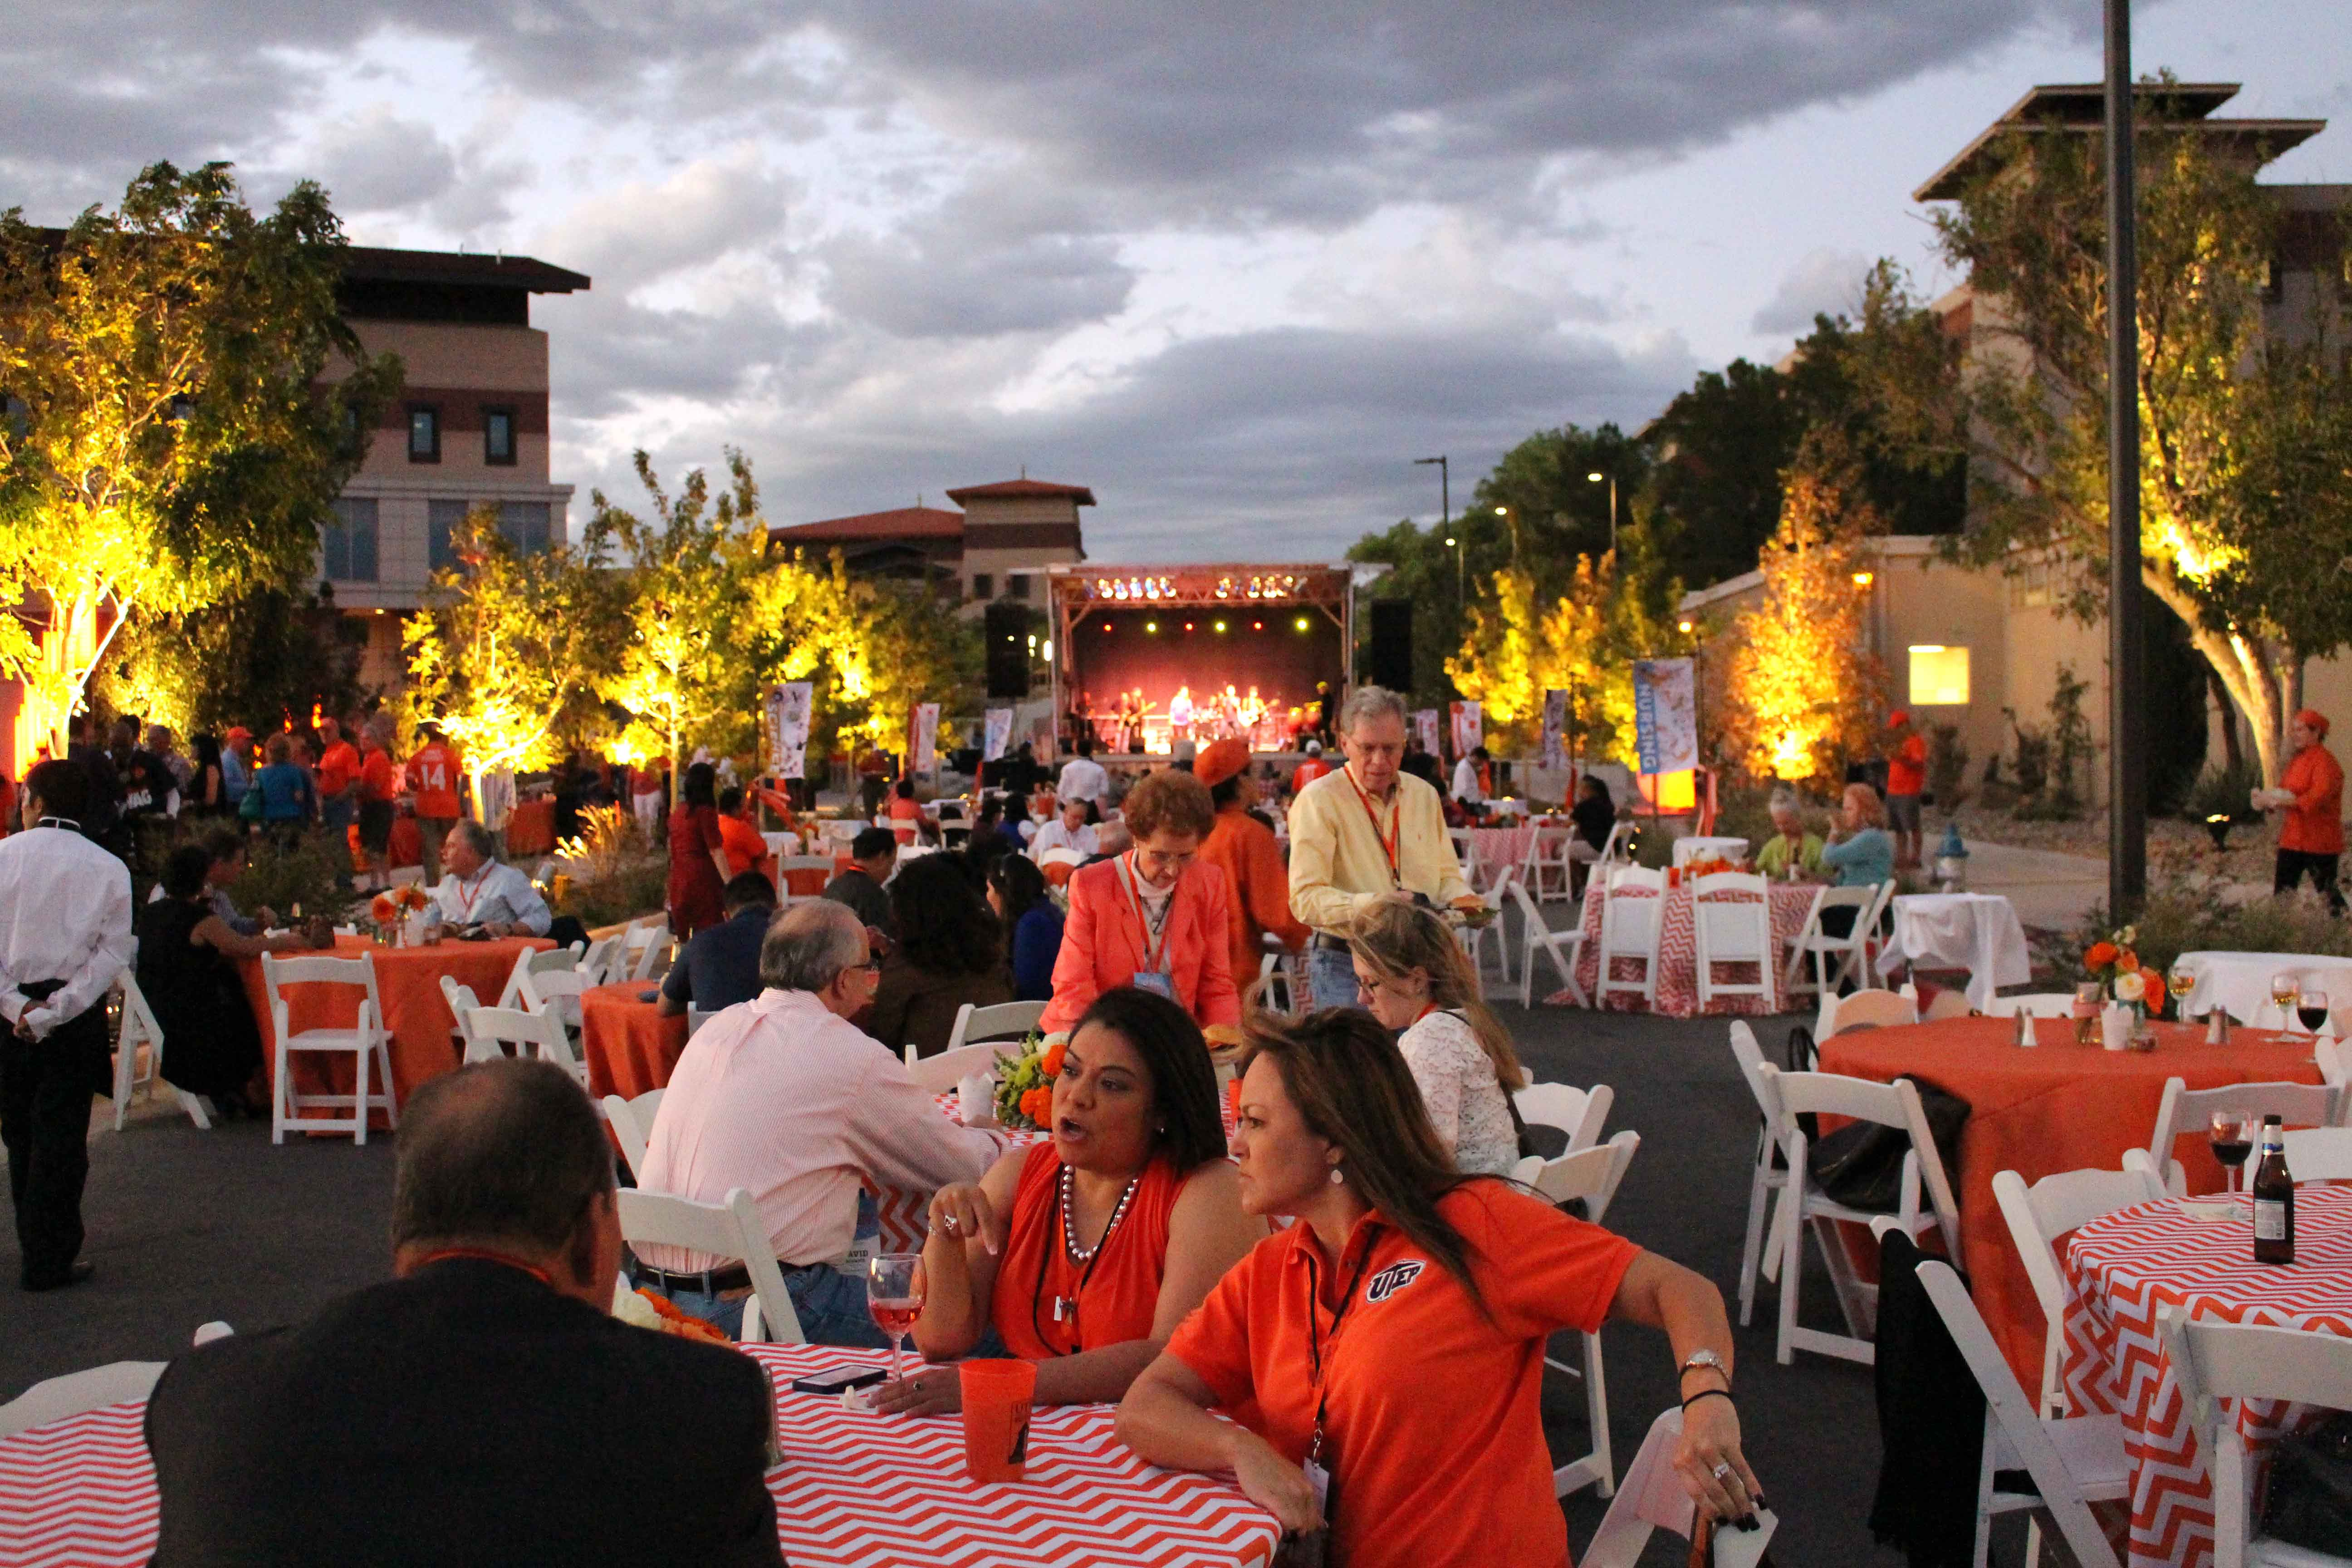 The block party was held on Wiggins Road on thursday, October 9.